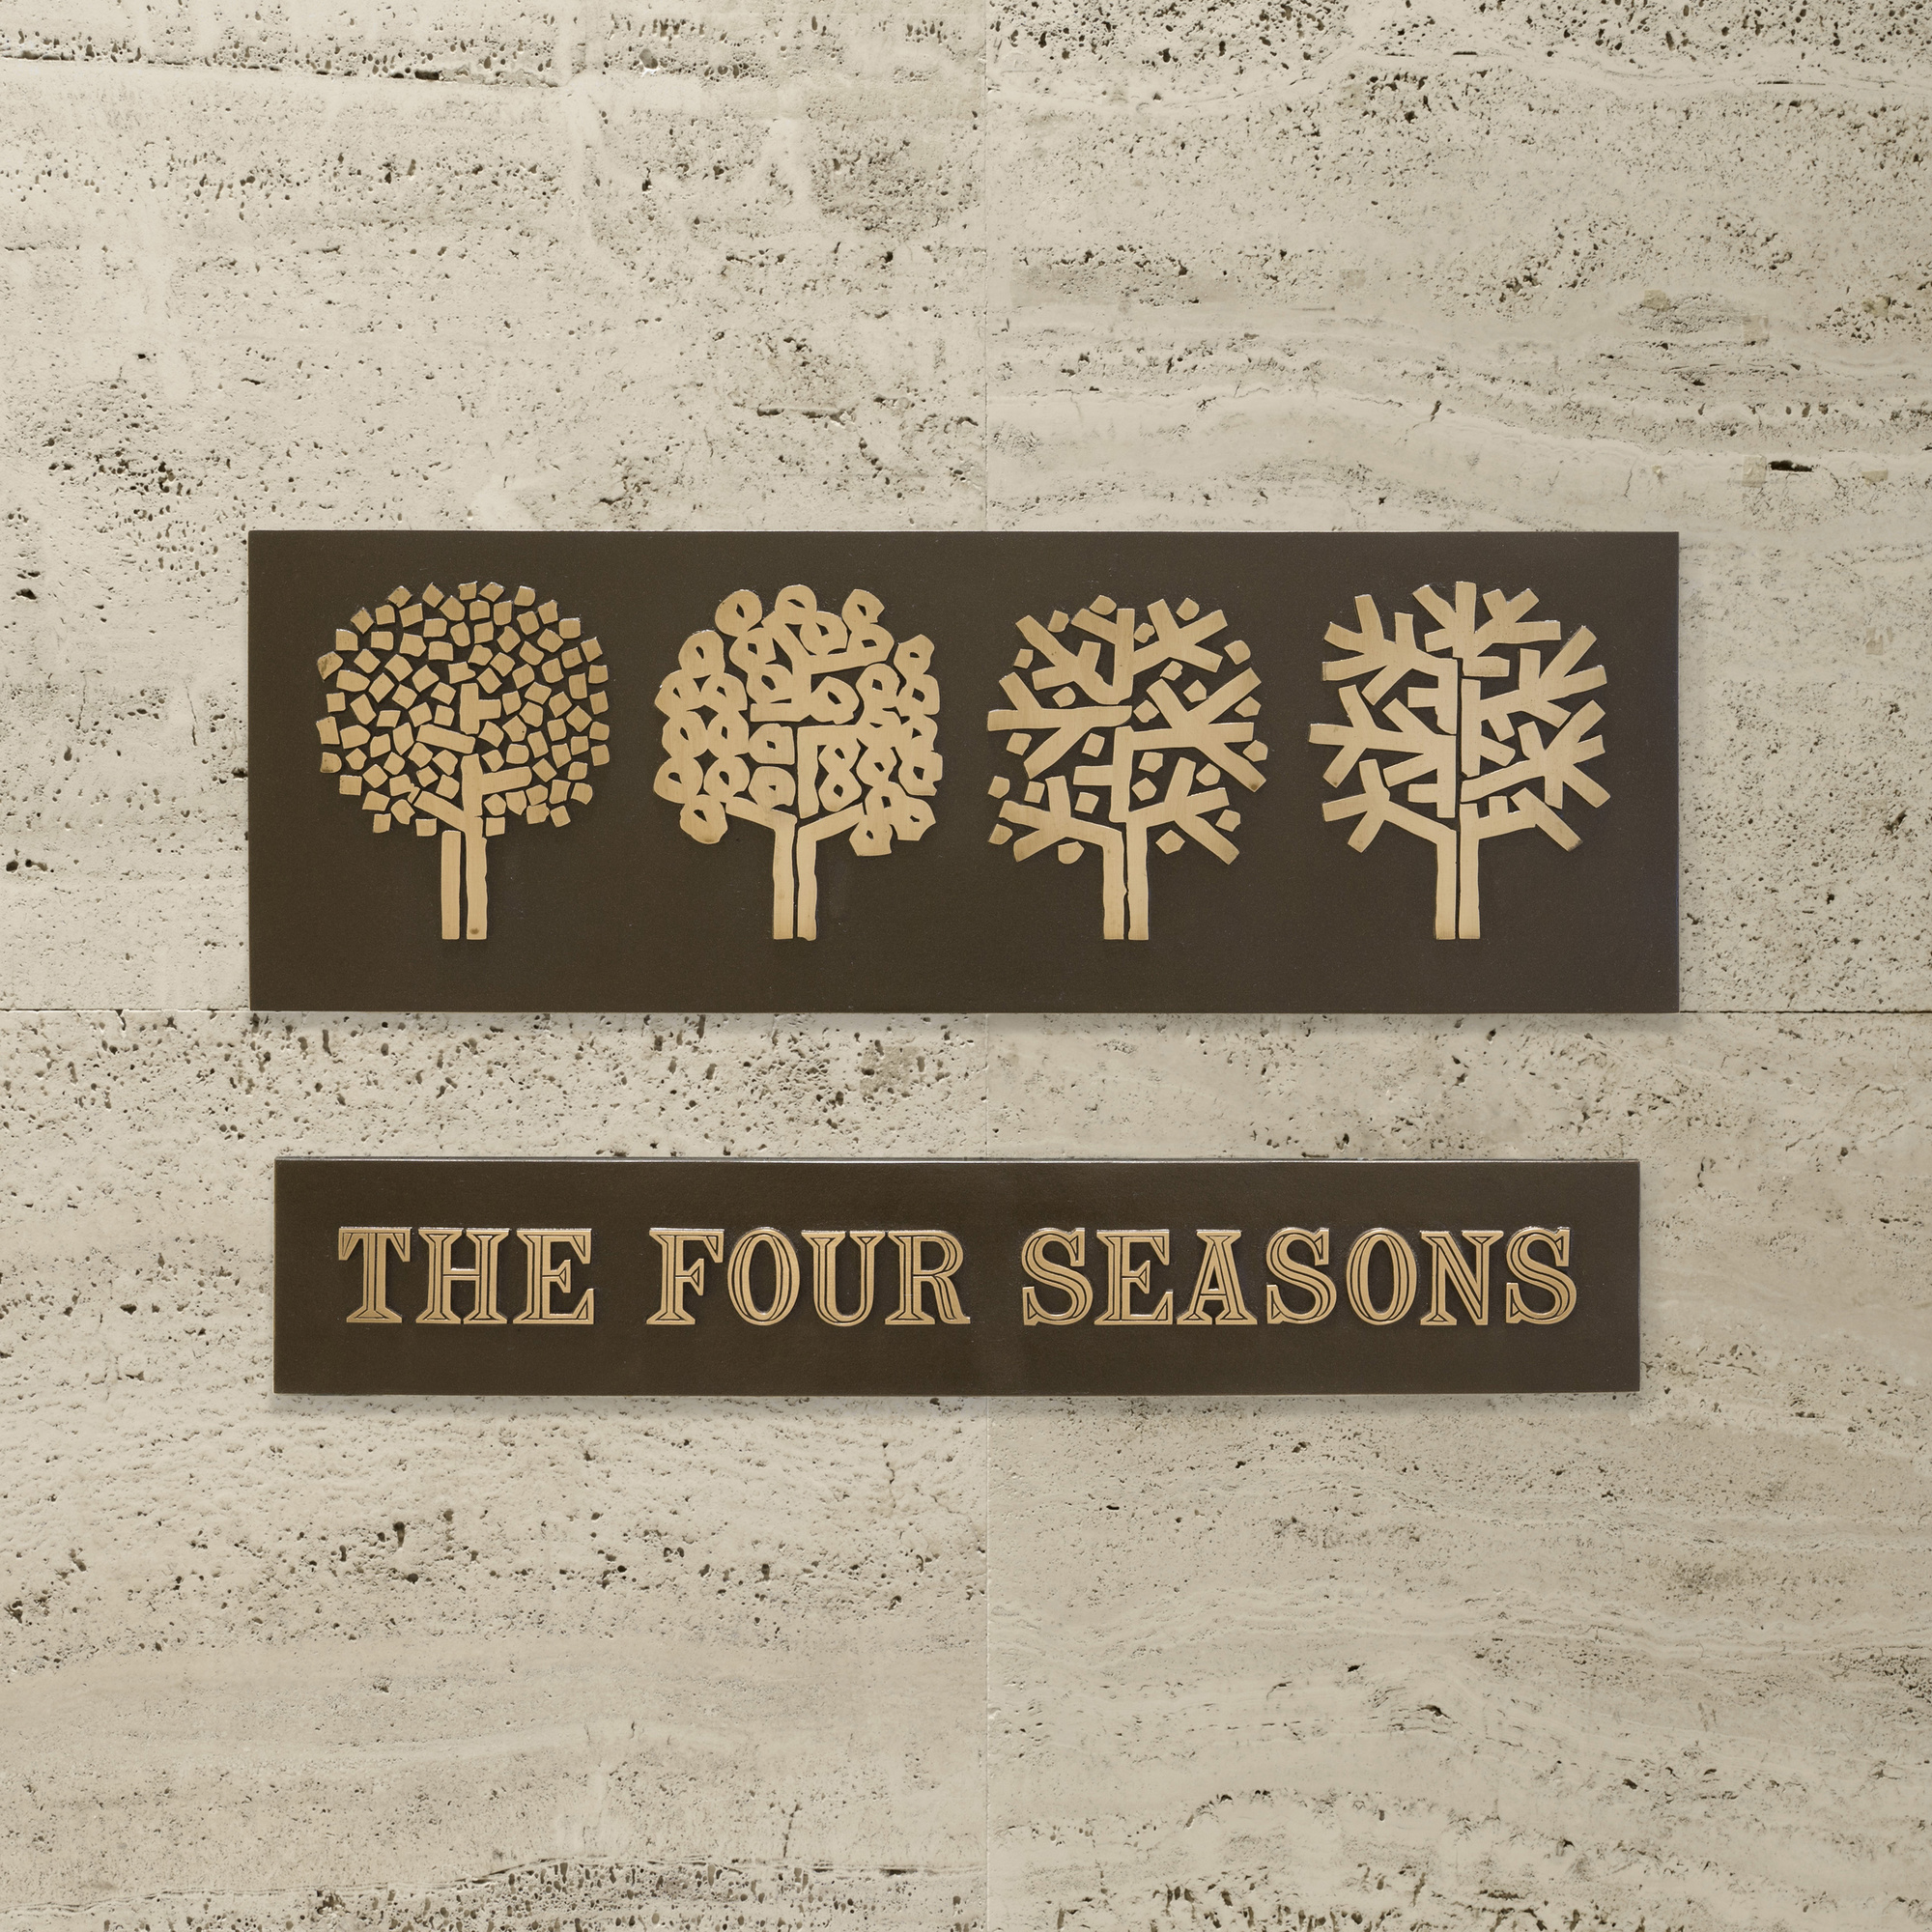 159: Emil Antonucci / The Four Seasons sign (1 of 1)